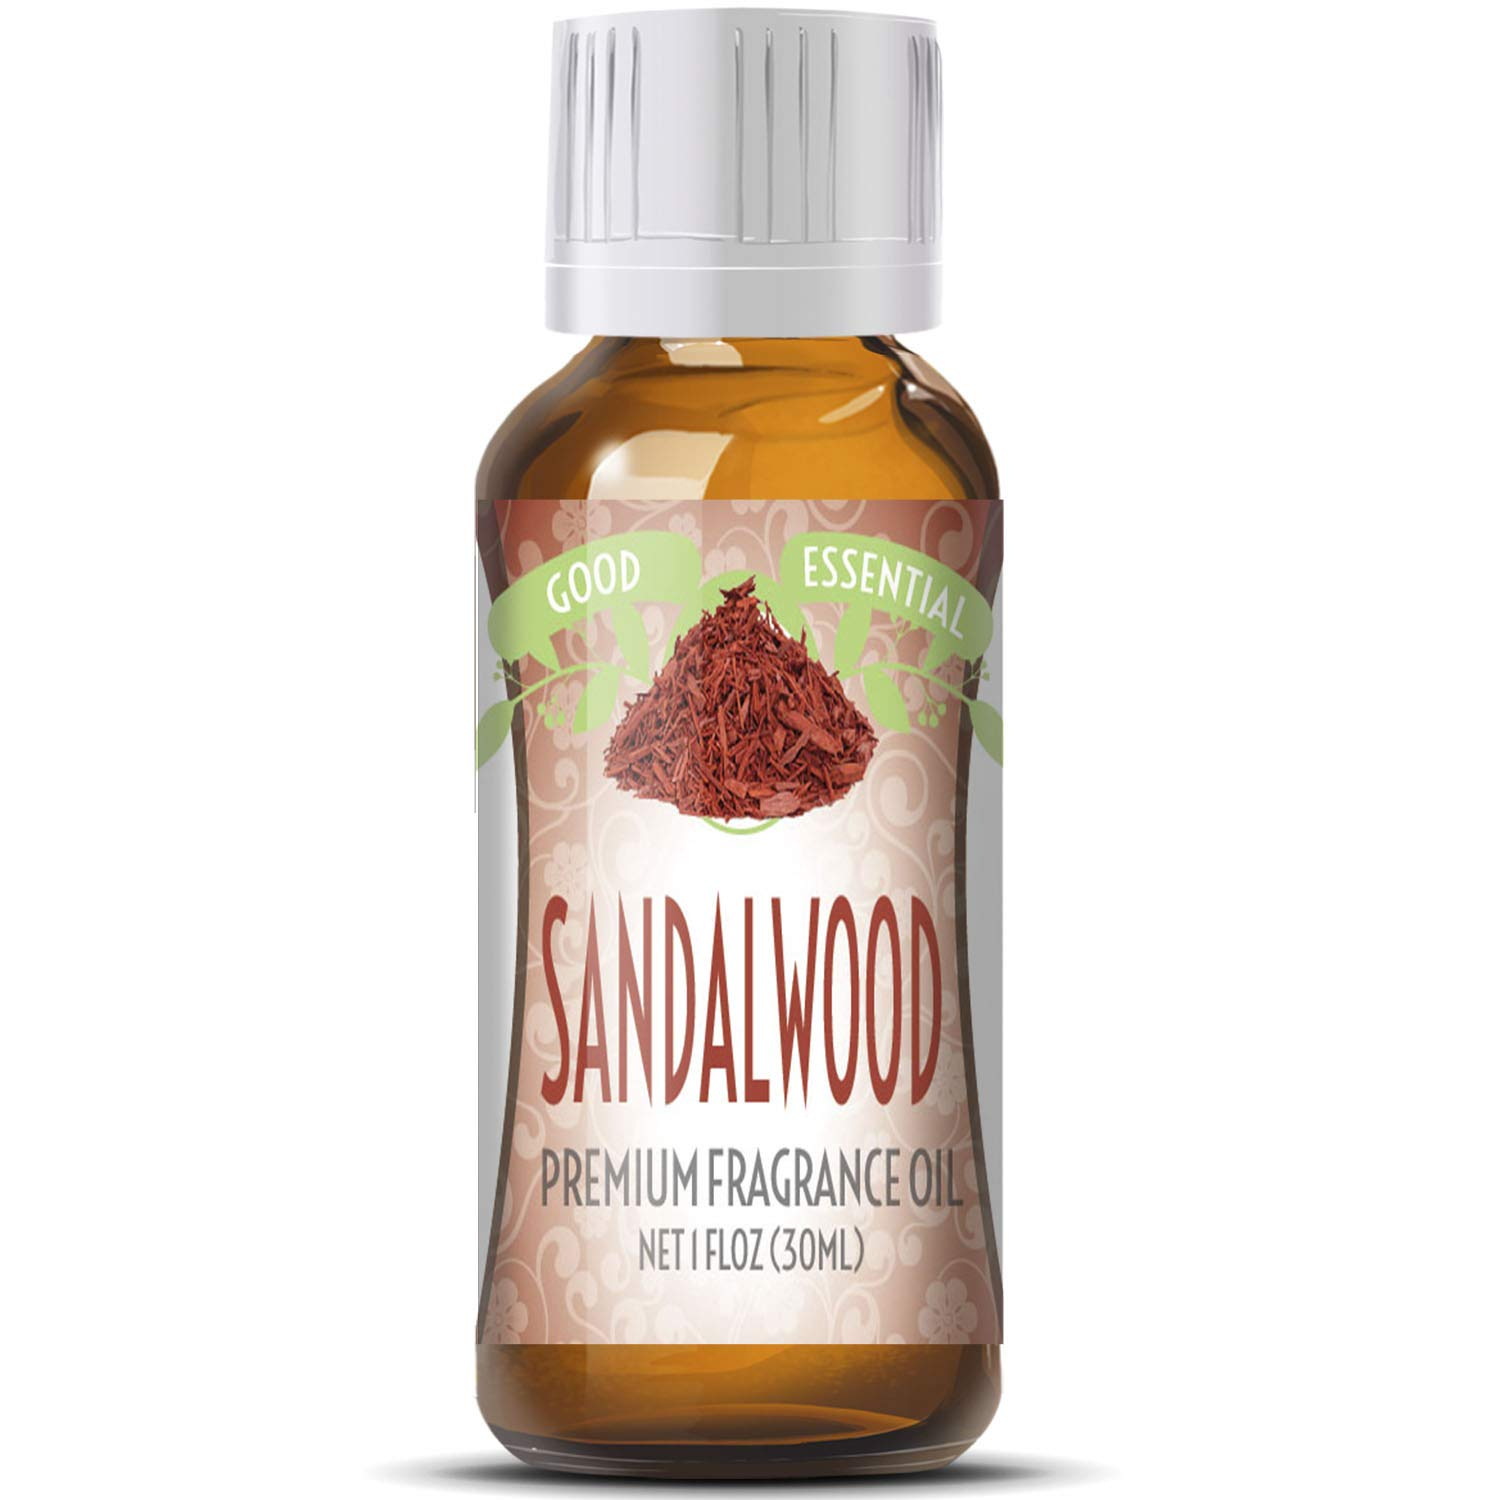 Sandalwood Scented Oil by Good Essential (Huge 1oz Bottle - Premium Grade Fragrance Oil) - Perfect for Aromatherapy, Soaps, Candles, Slime, Lotions, and More!